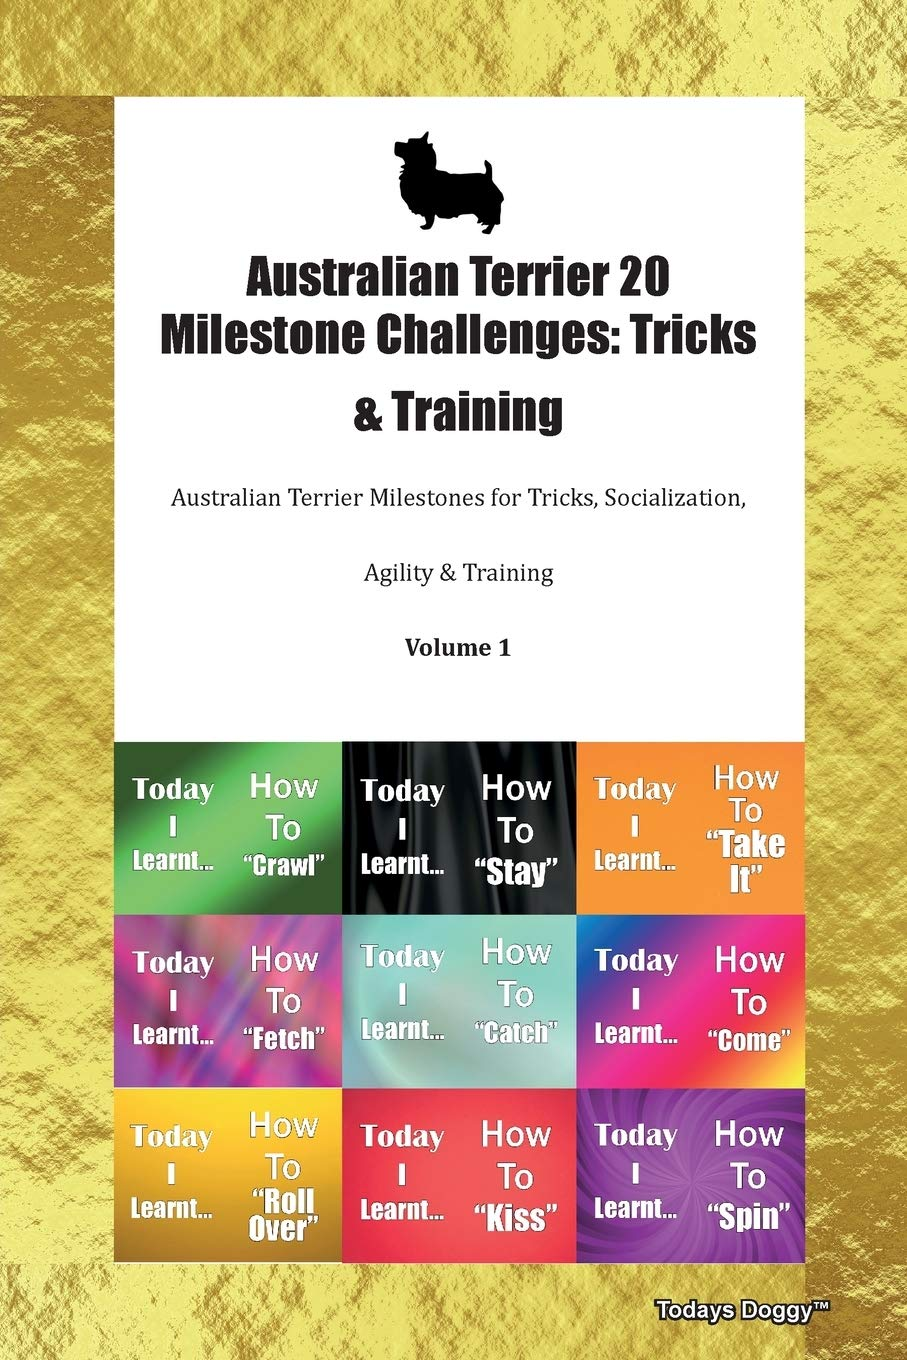 Australian Terrier 20 Milestone Challenges: Tricks & Training Australian Terrier Milestones for Tricks, Socialization, Agility & Training Volume 1